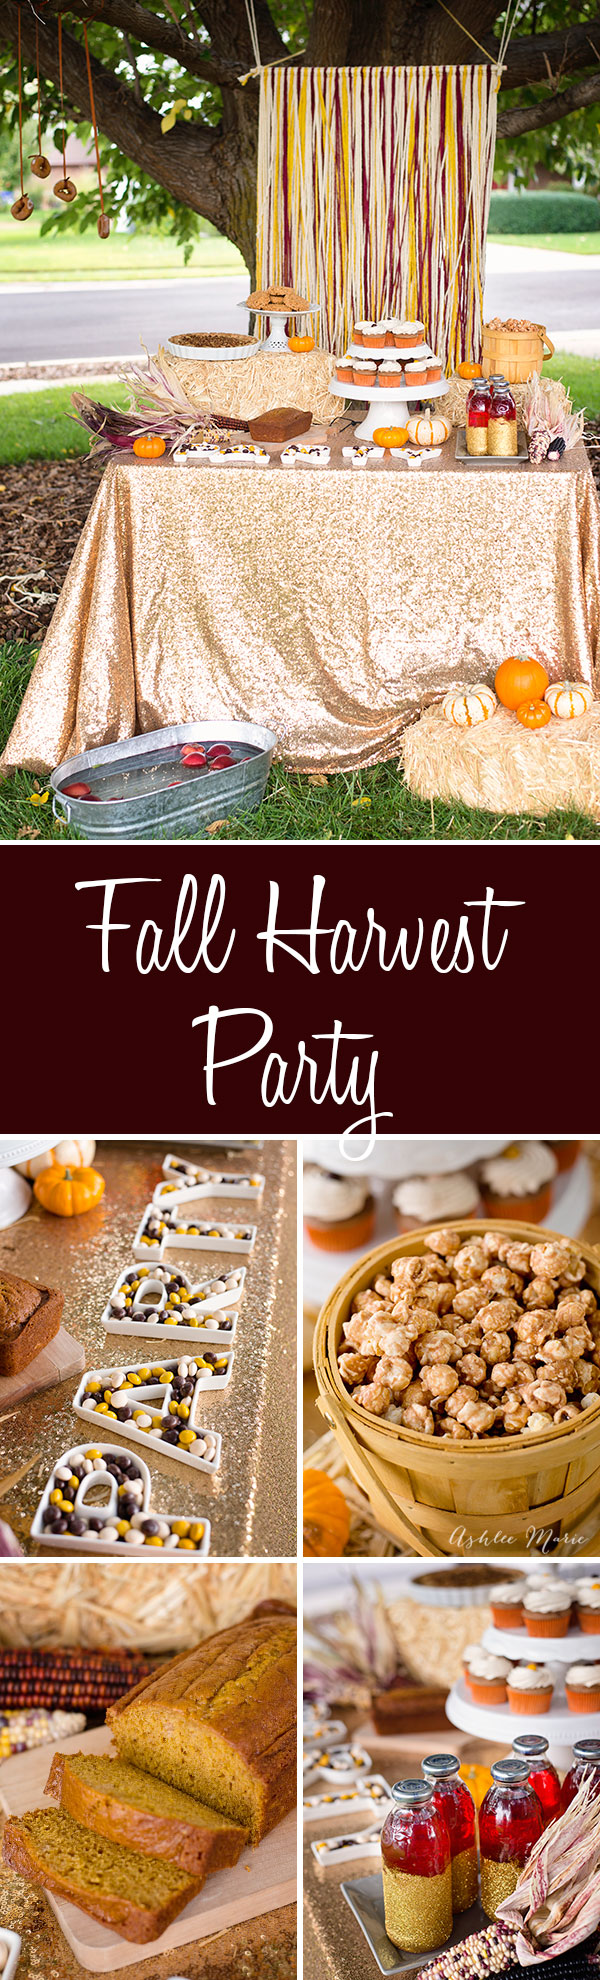 A Fall harvest party celebrating all things Fall, pumpkin bread, apple pie, cinnamon toast popcorn, pecan pie M&M's® cupcakes and more. Easy to put together with decorating tips and activities